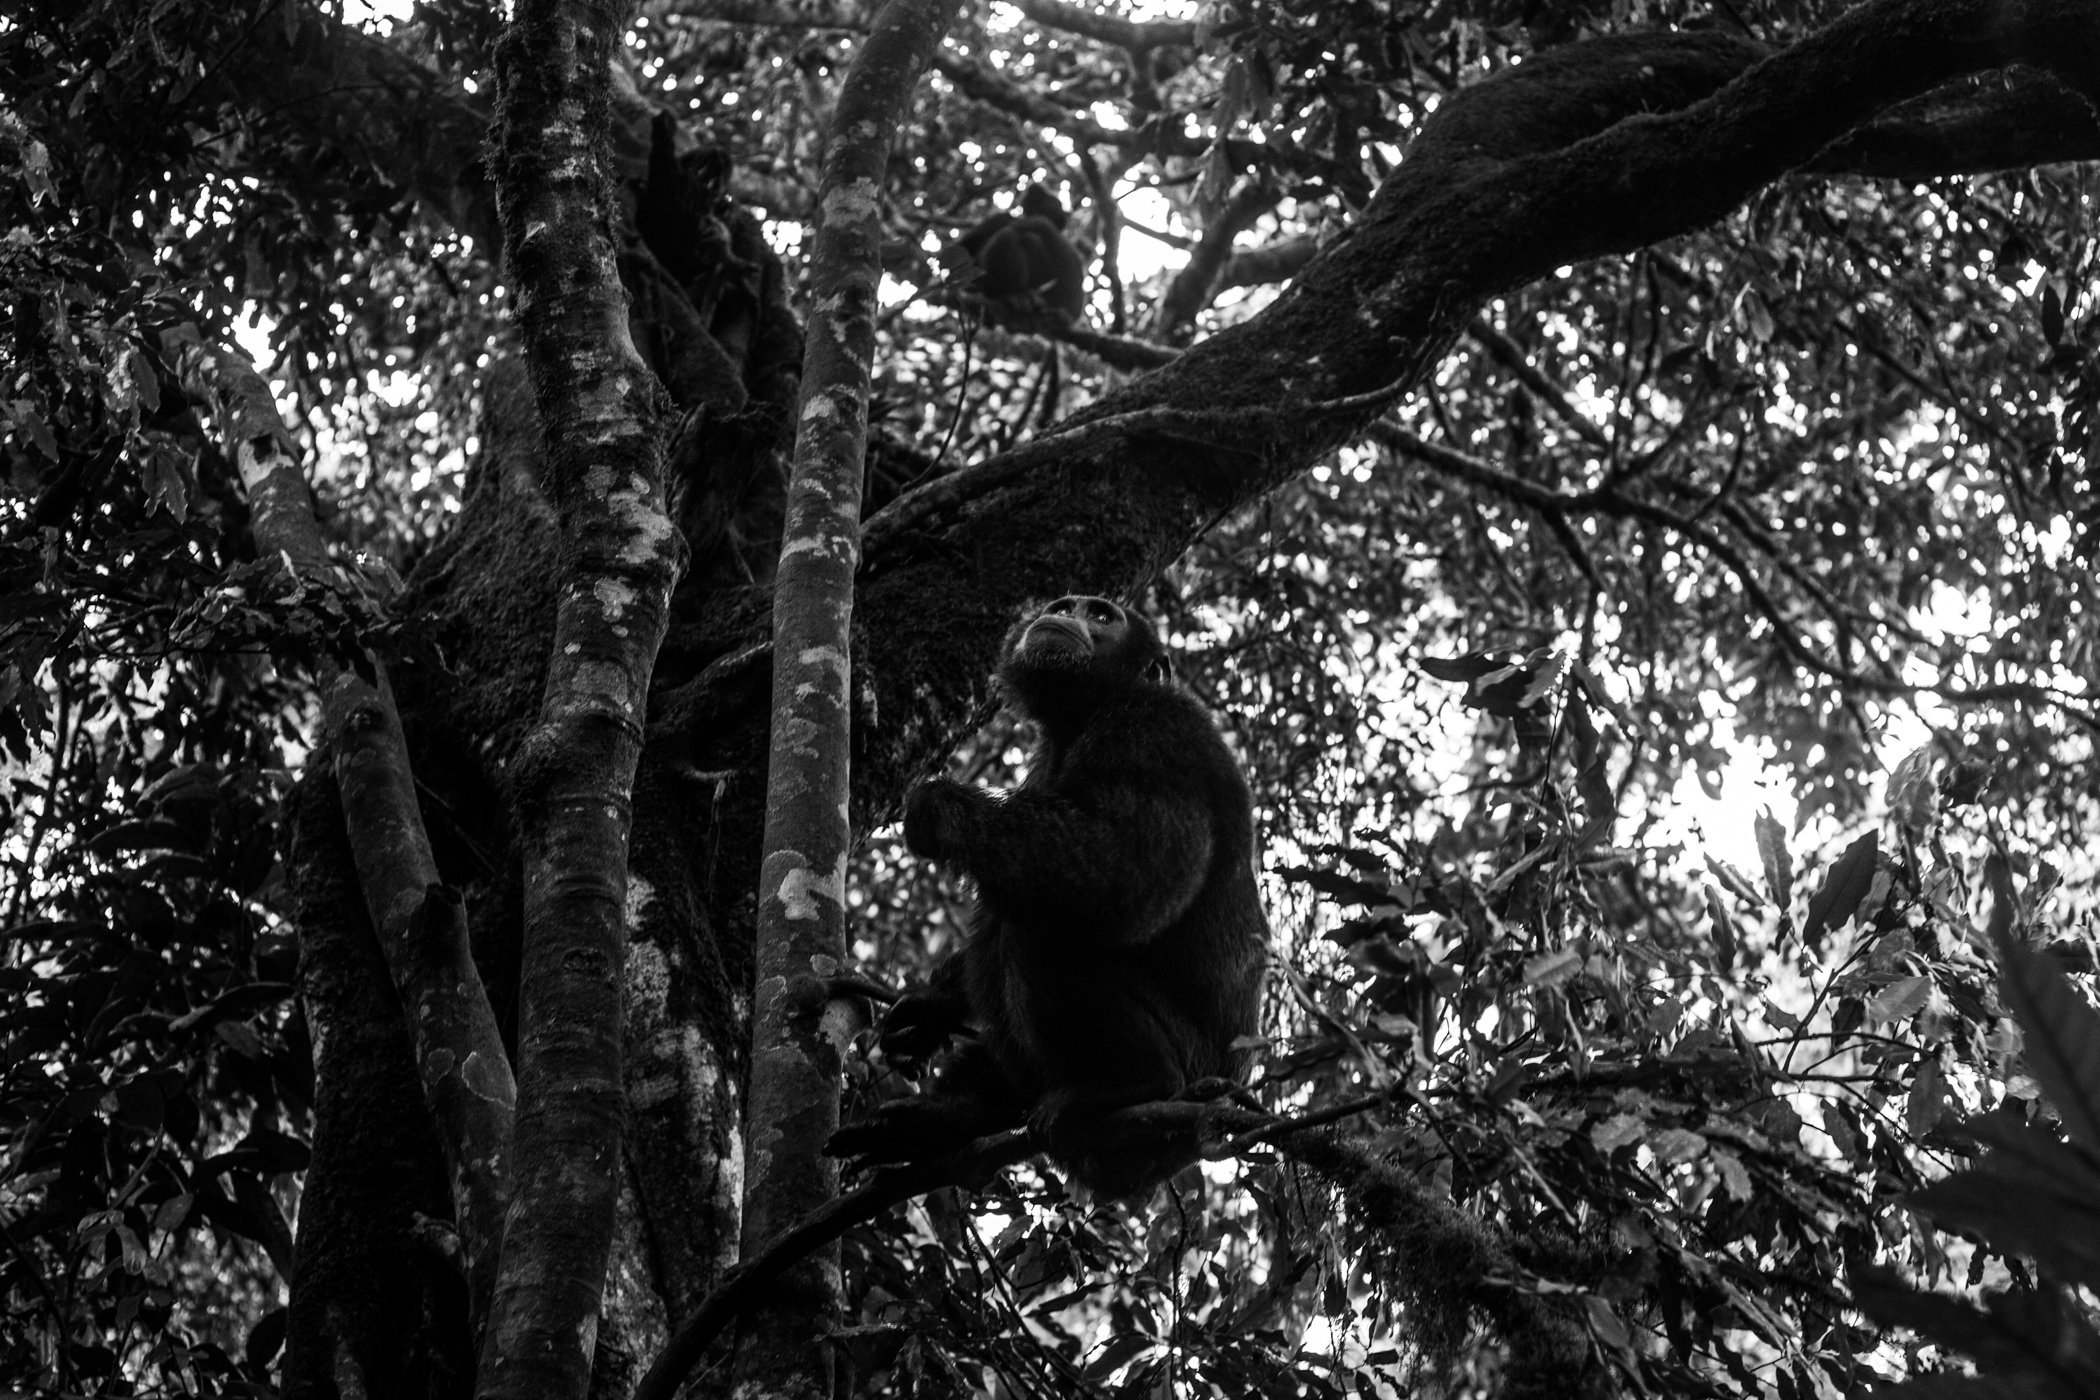 Chimp_Forest_Uganda-IMG_1271-untitled.jpg